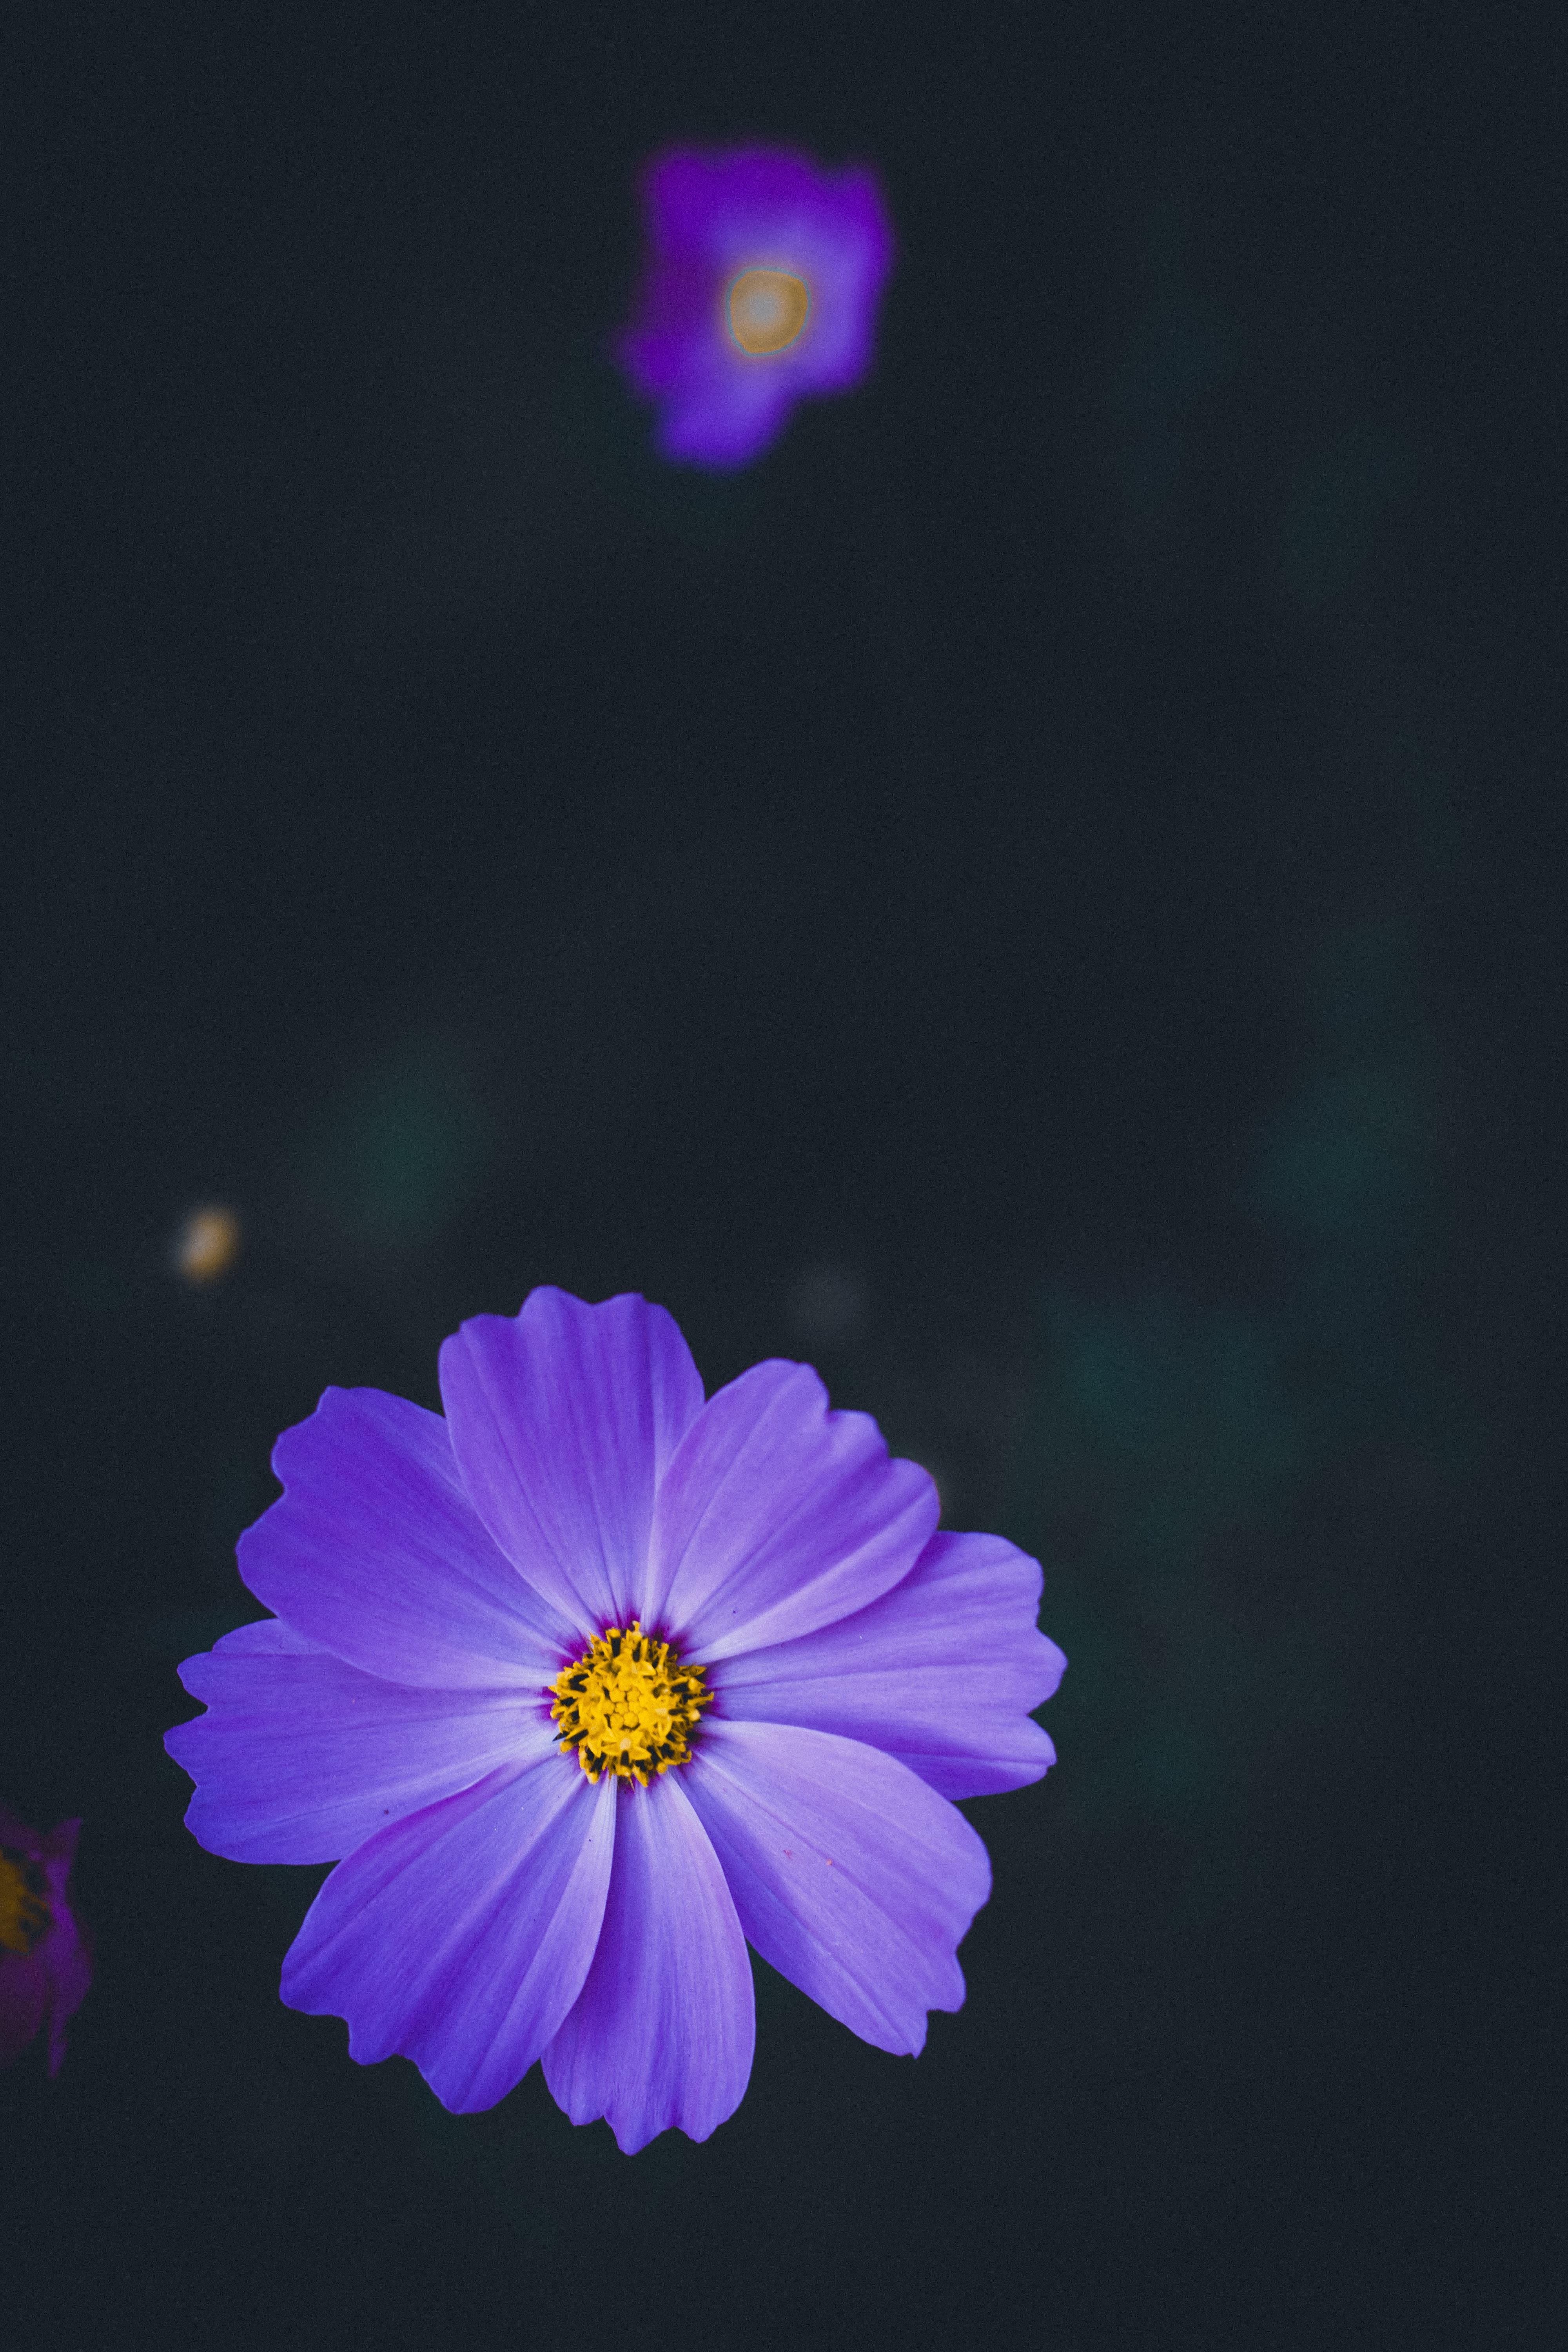 59572 download wallpaper Macro, Flowers, Lilac, Flower, Blur, Smooth, Kosmeya, Cosmos screensavers and pictures for free